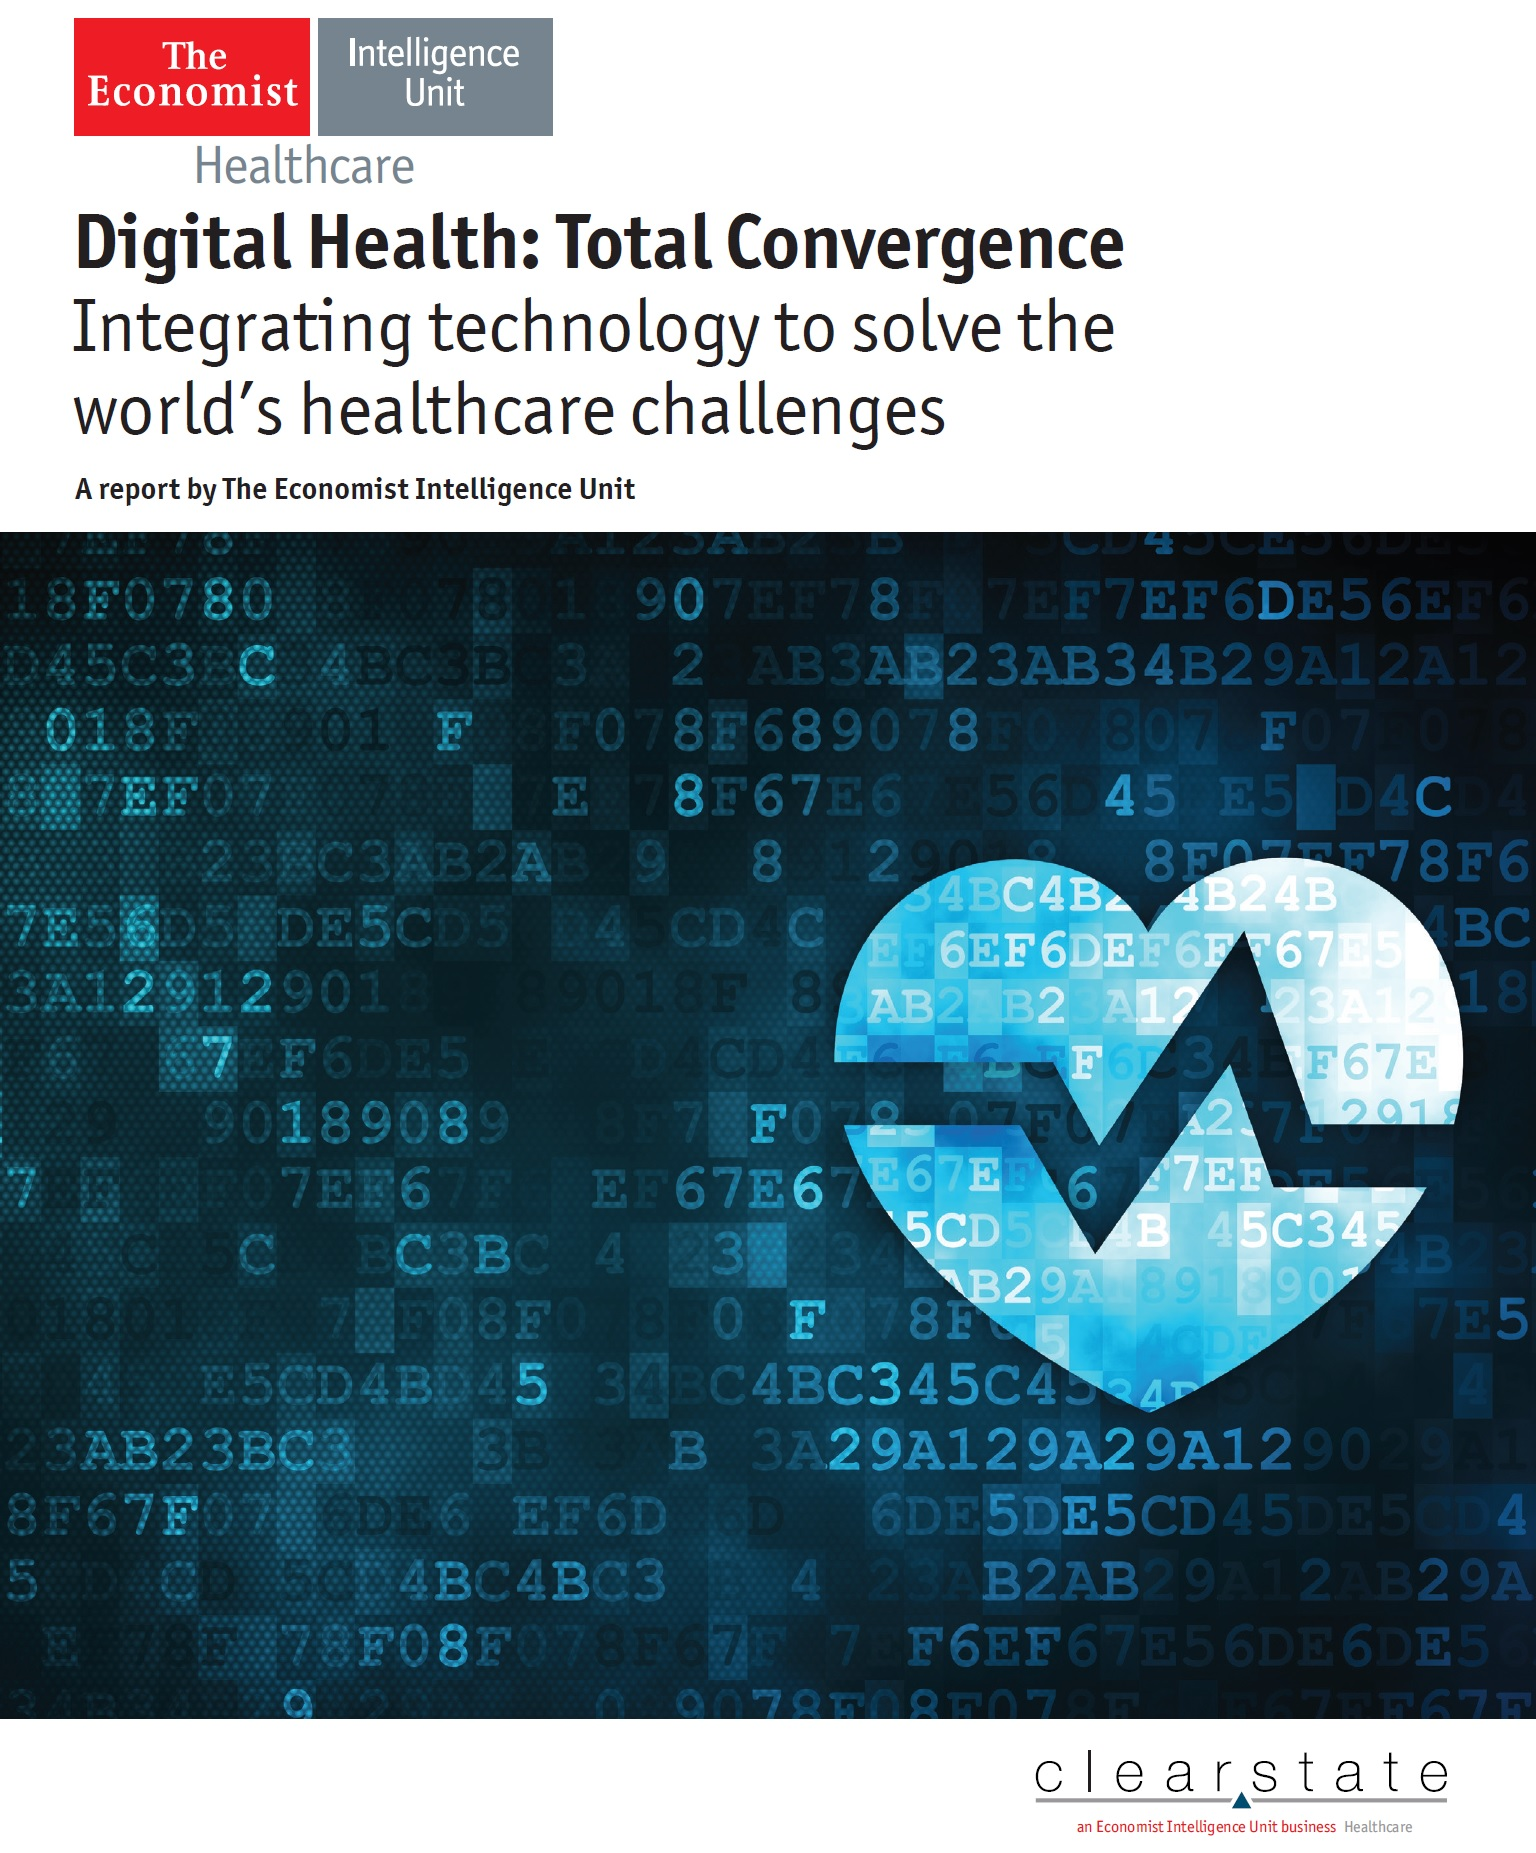 Isfteh international society for telemedicine and ehealth a report by the economist intelligence unit fandeluxe Gallery